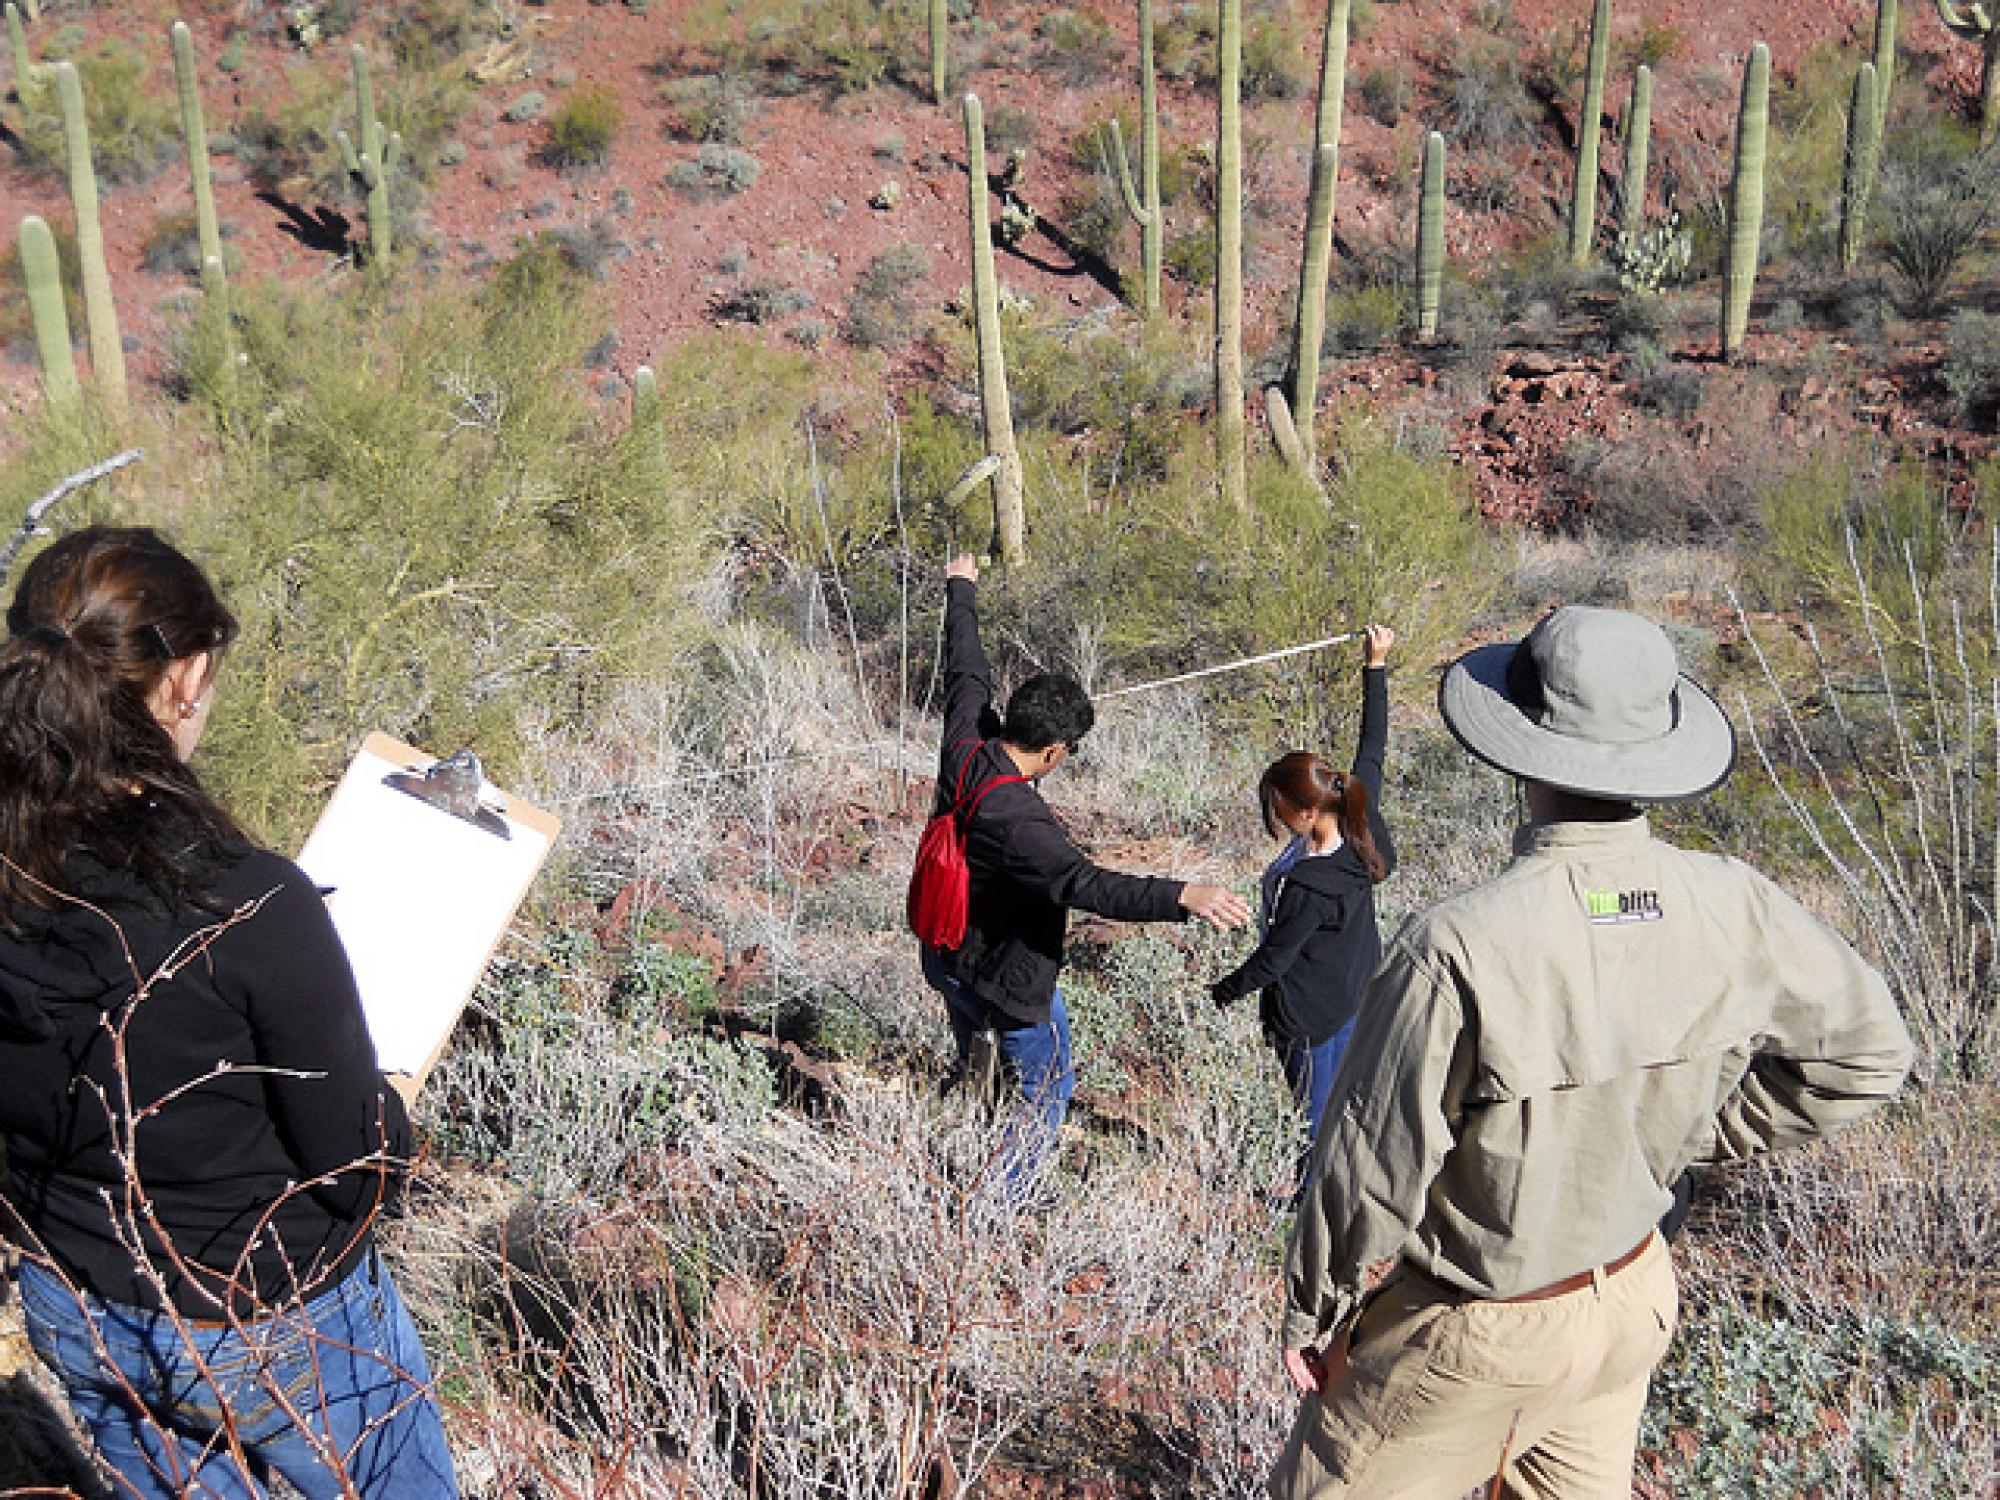 In the Spring semesters of 2012 and 2013, high school students became field biologists, searching for undiscovered species of bacteria and fungi living with desert plants.